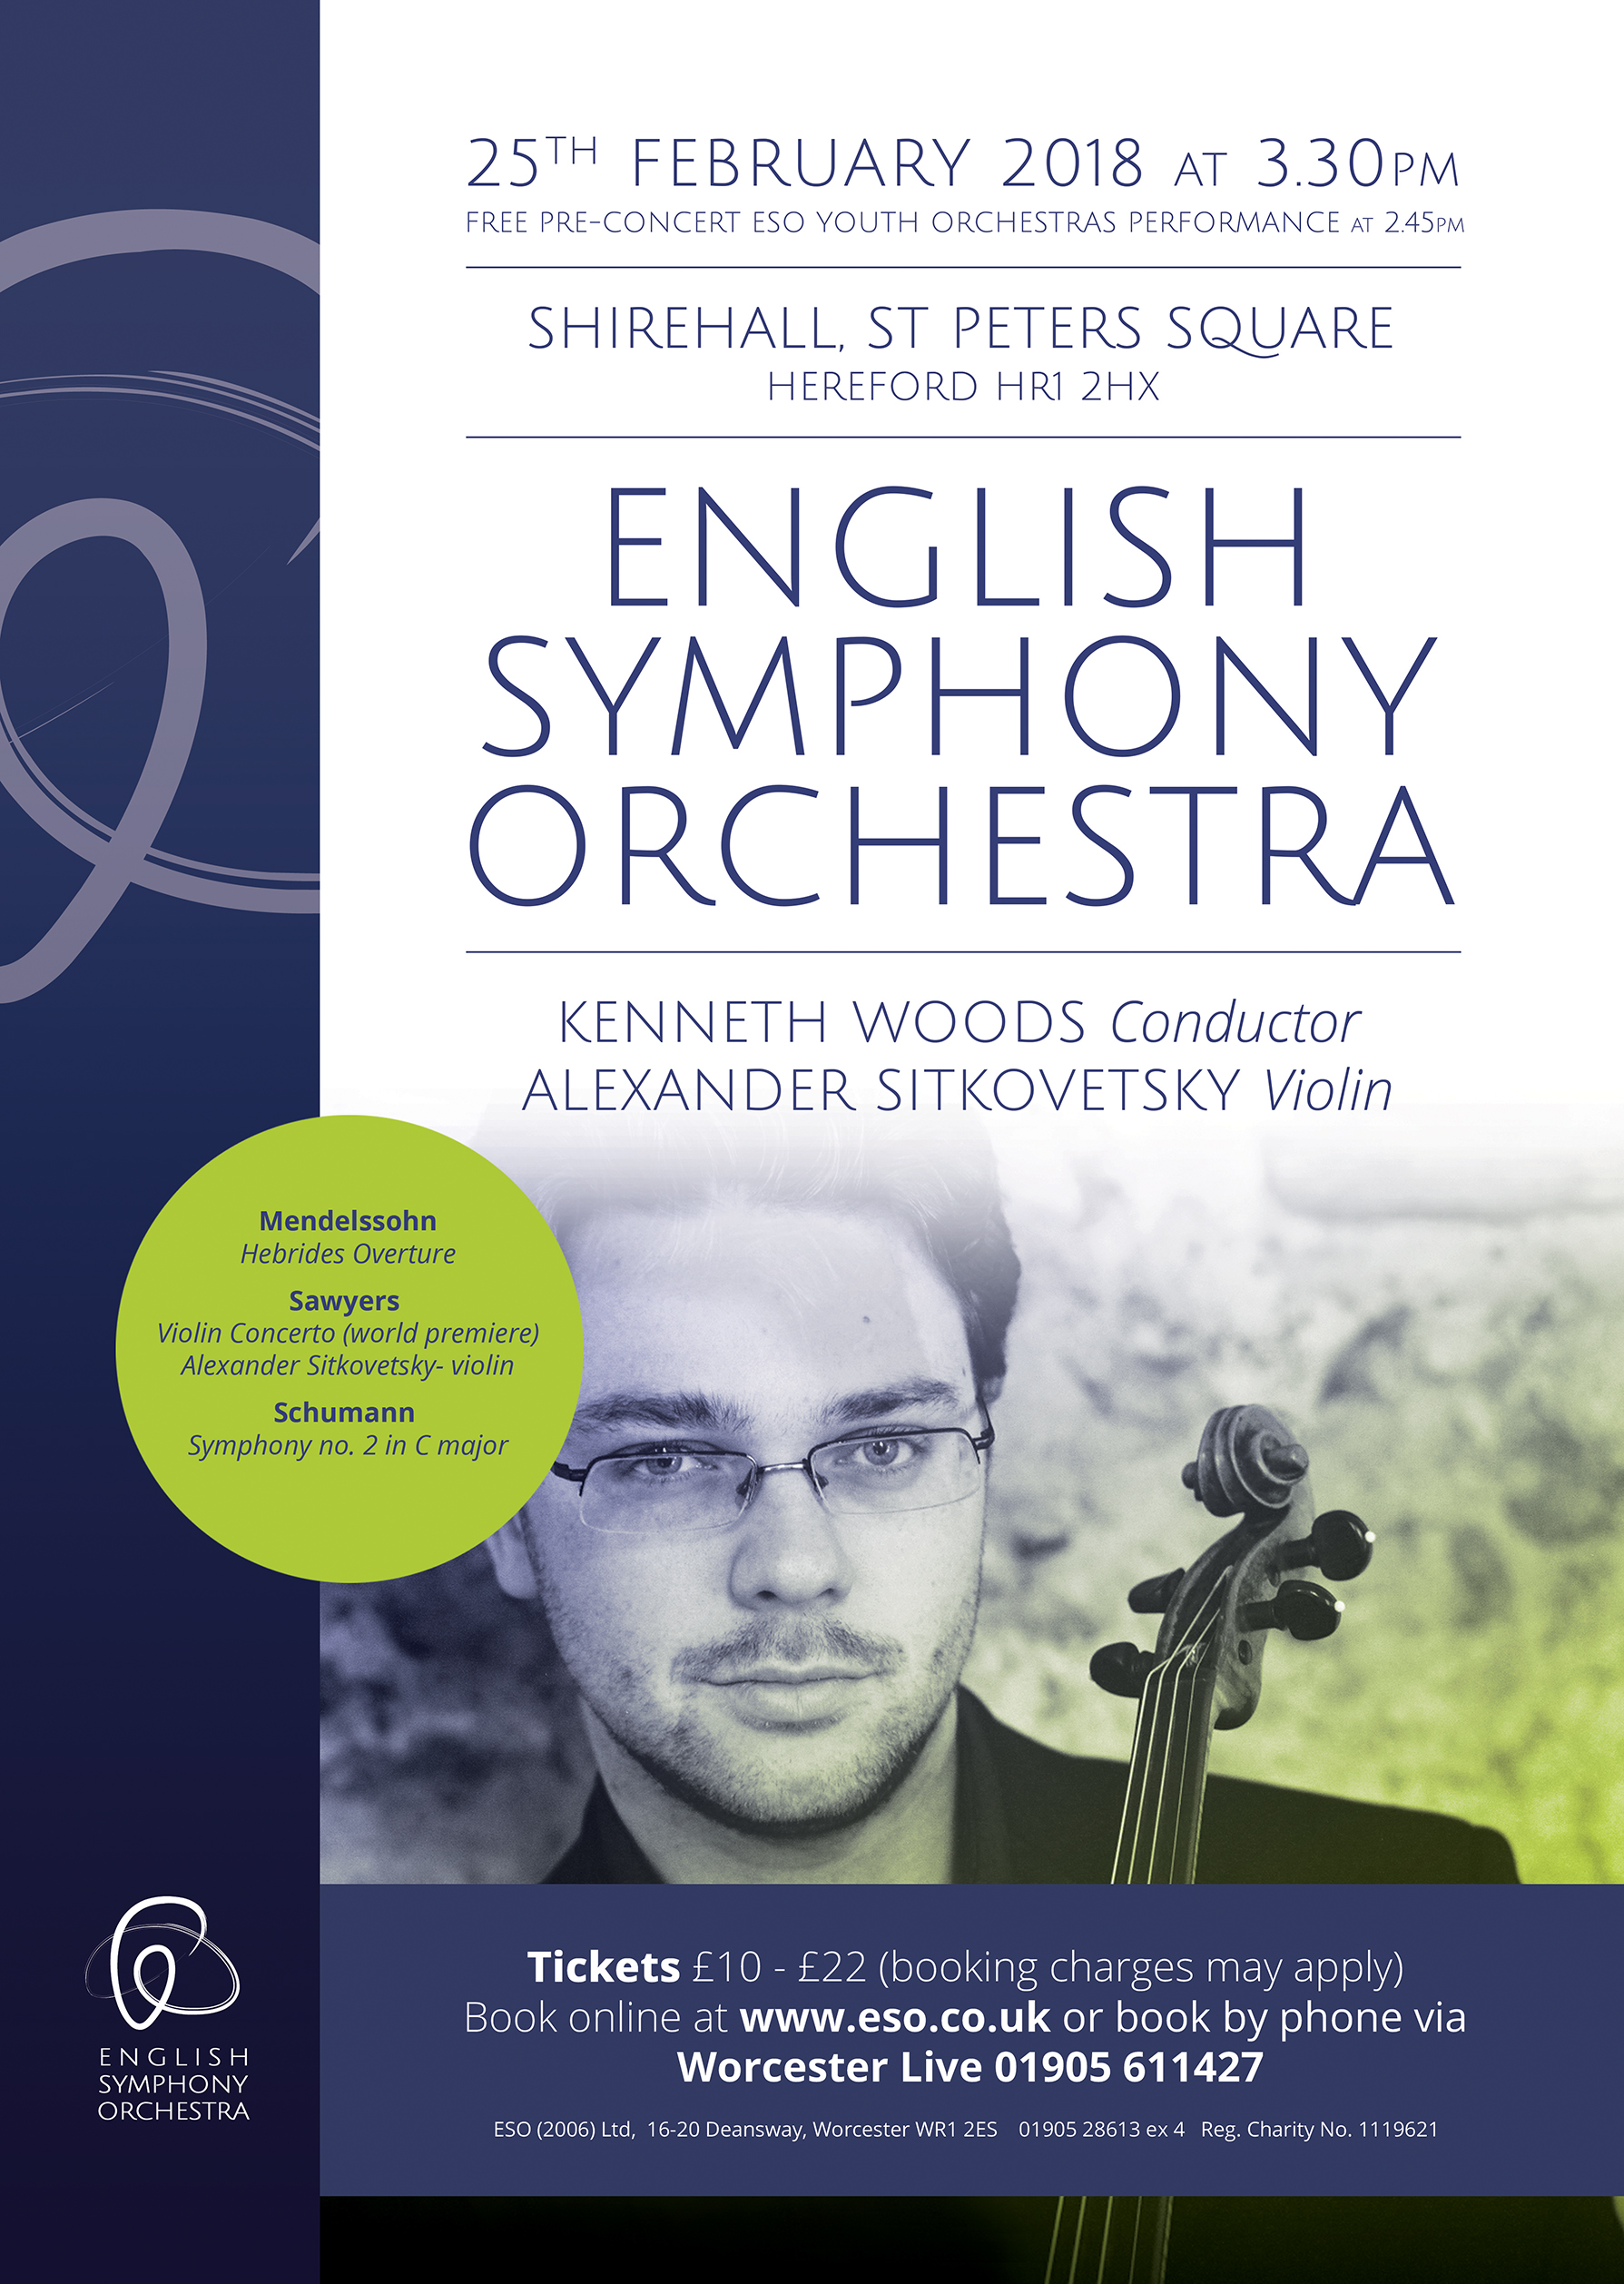 English Symphony Orchestra matinee - Mendelssohn, Schumann and a British premiere